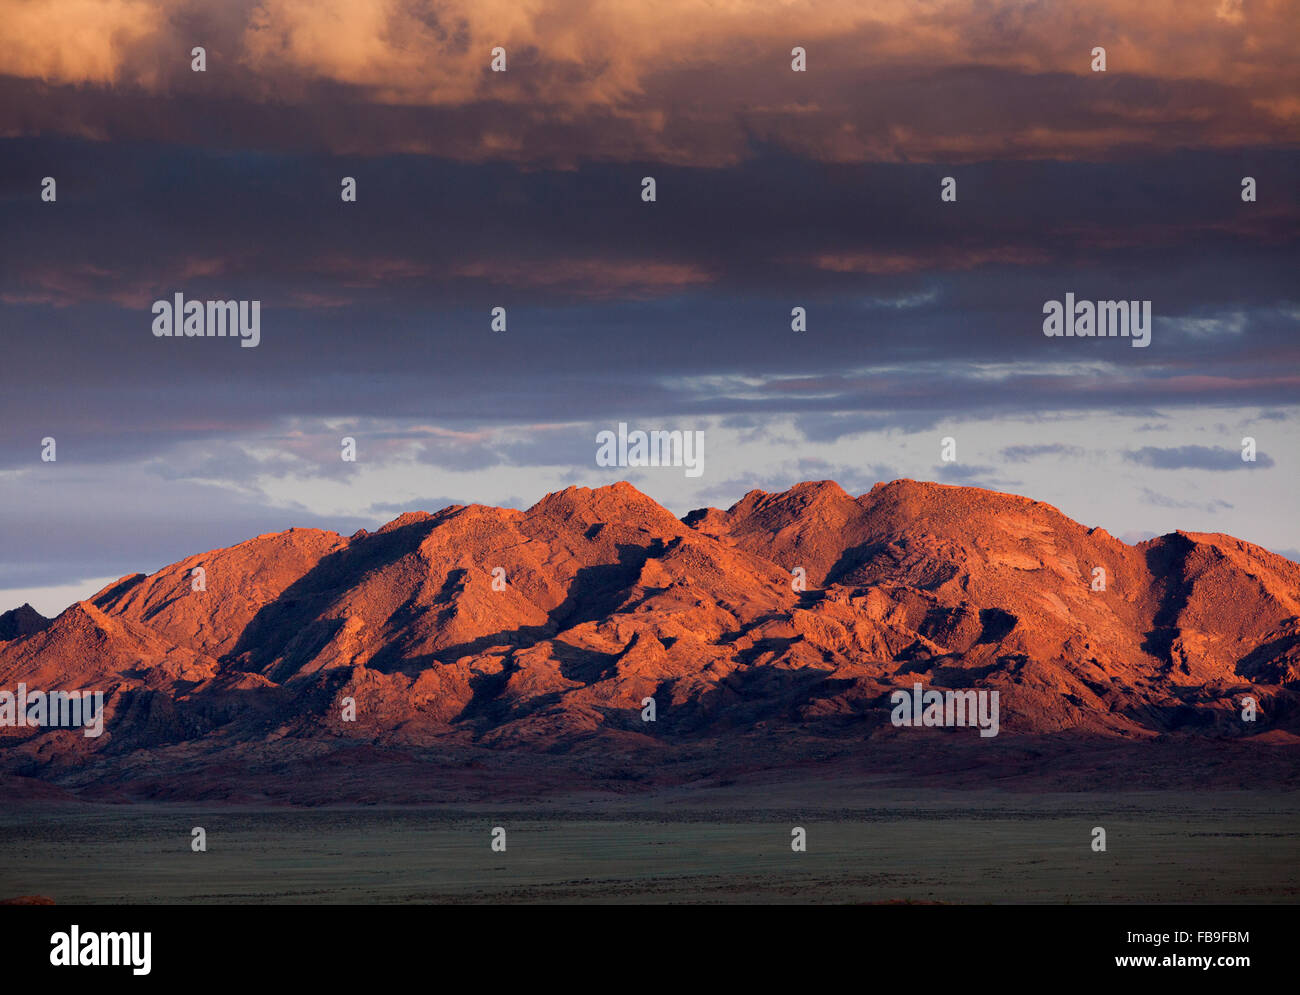 Sunset on the mountains near Khovd and Achit Lake in remote far-western Mongolia. - Stock Image